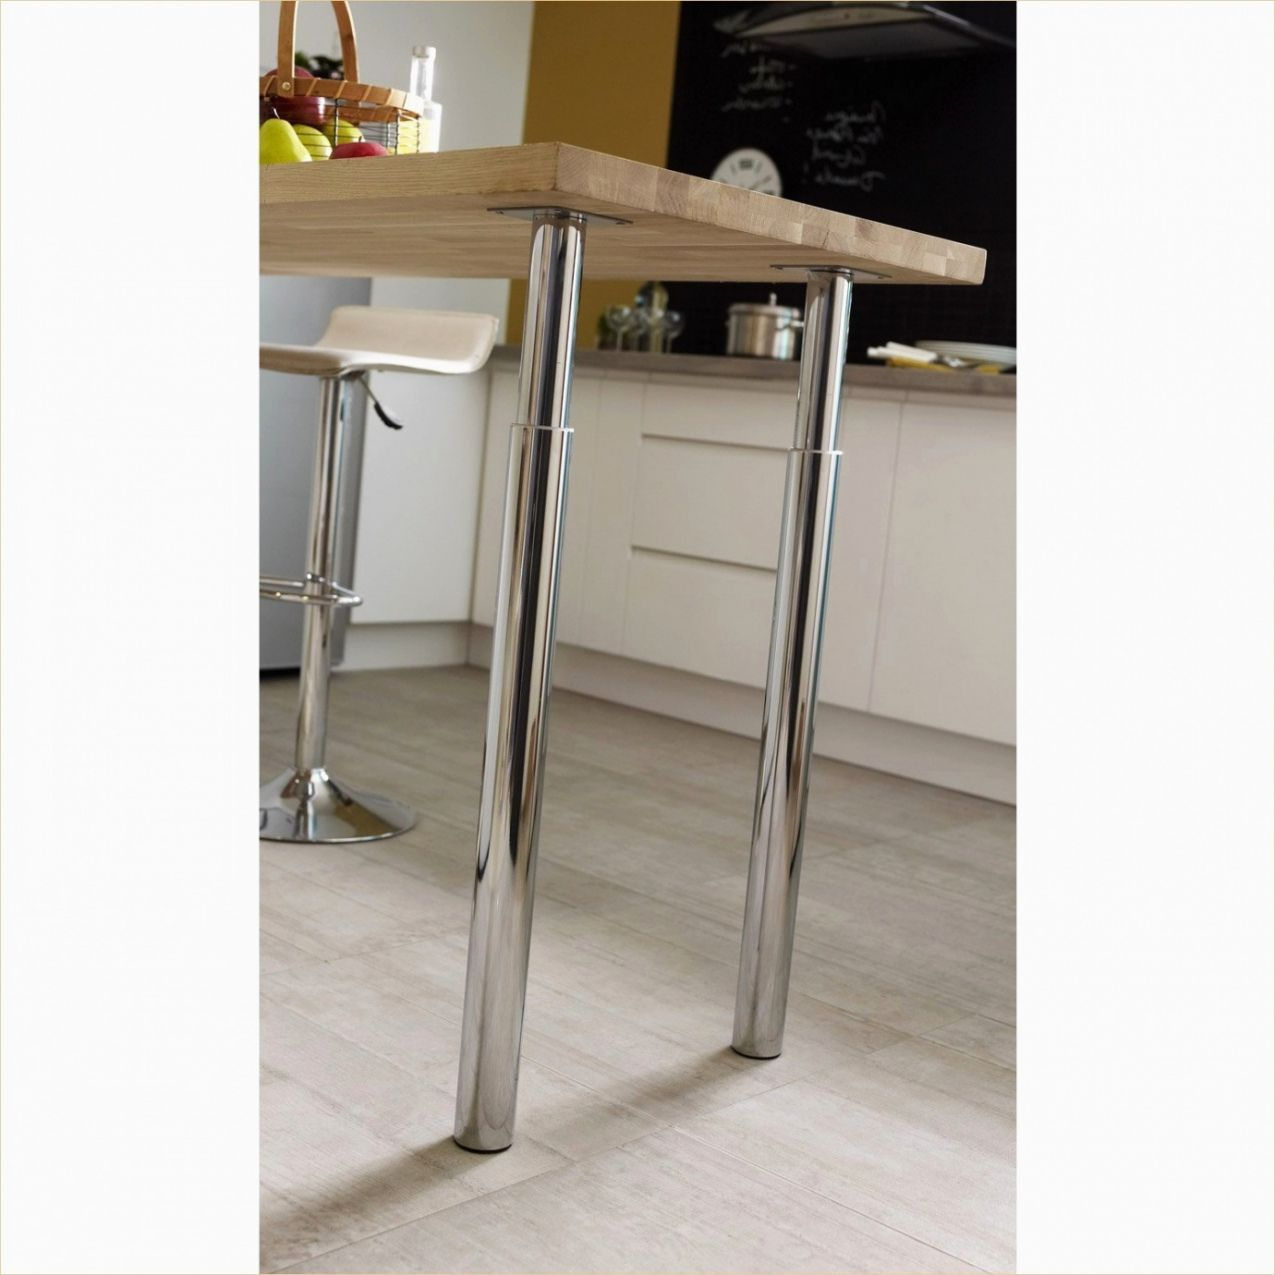 28 Meuble Metal Ikea Occasion 2019 Check More At Https Www Unionjacktrooper Com 20 Meuble Metal Ikea Occasion 2019 Bar Table Home Decor Furniture